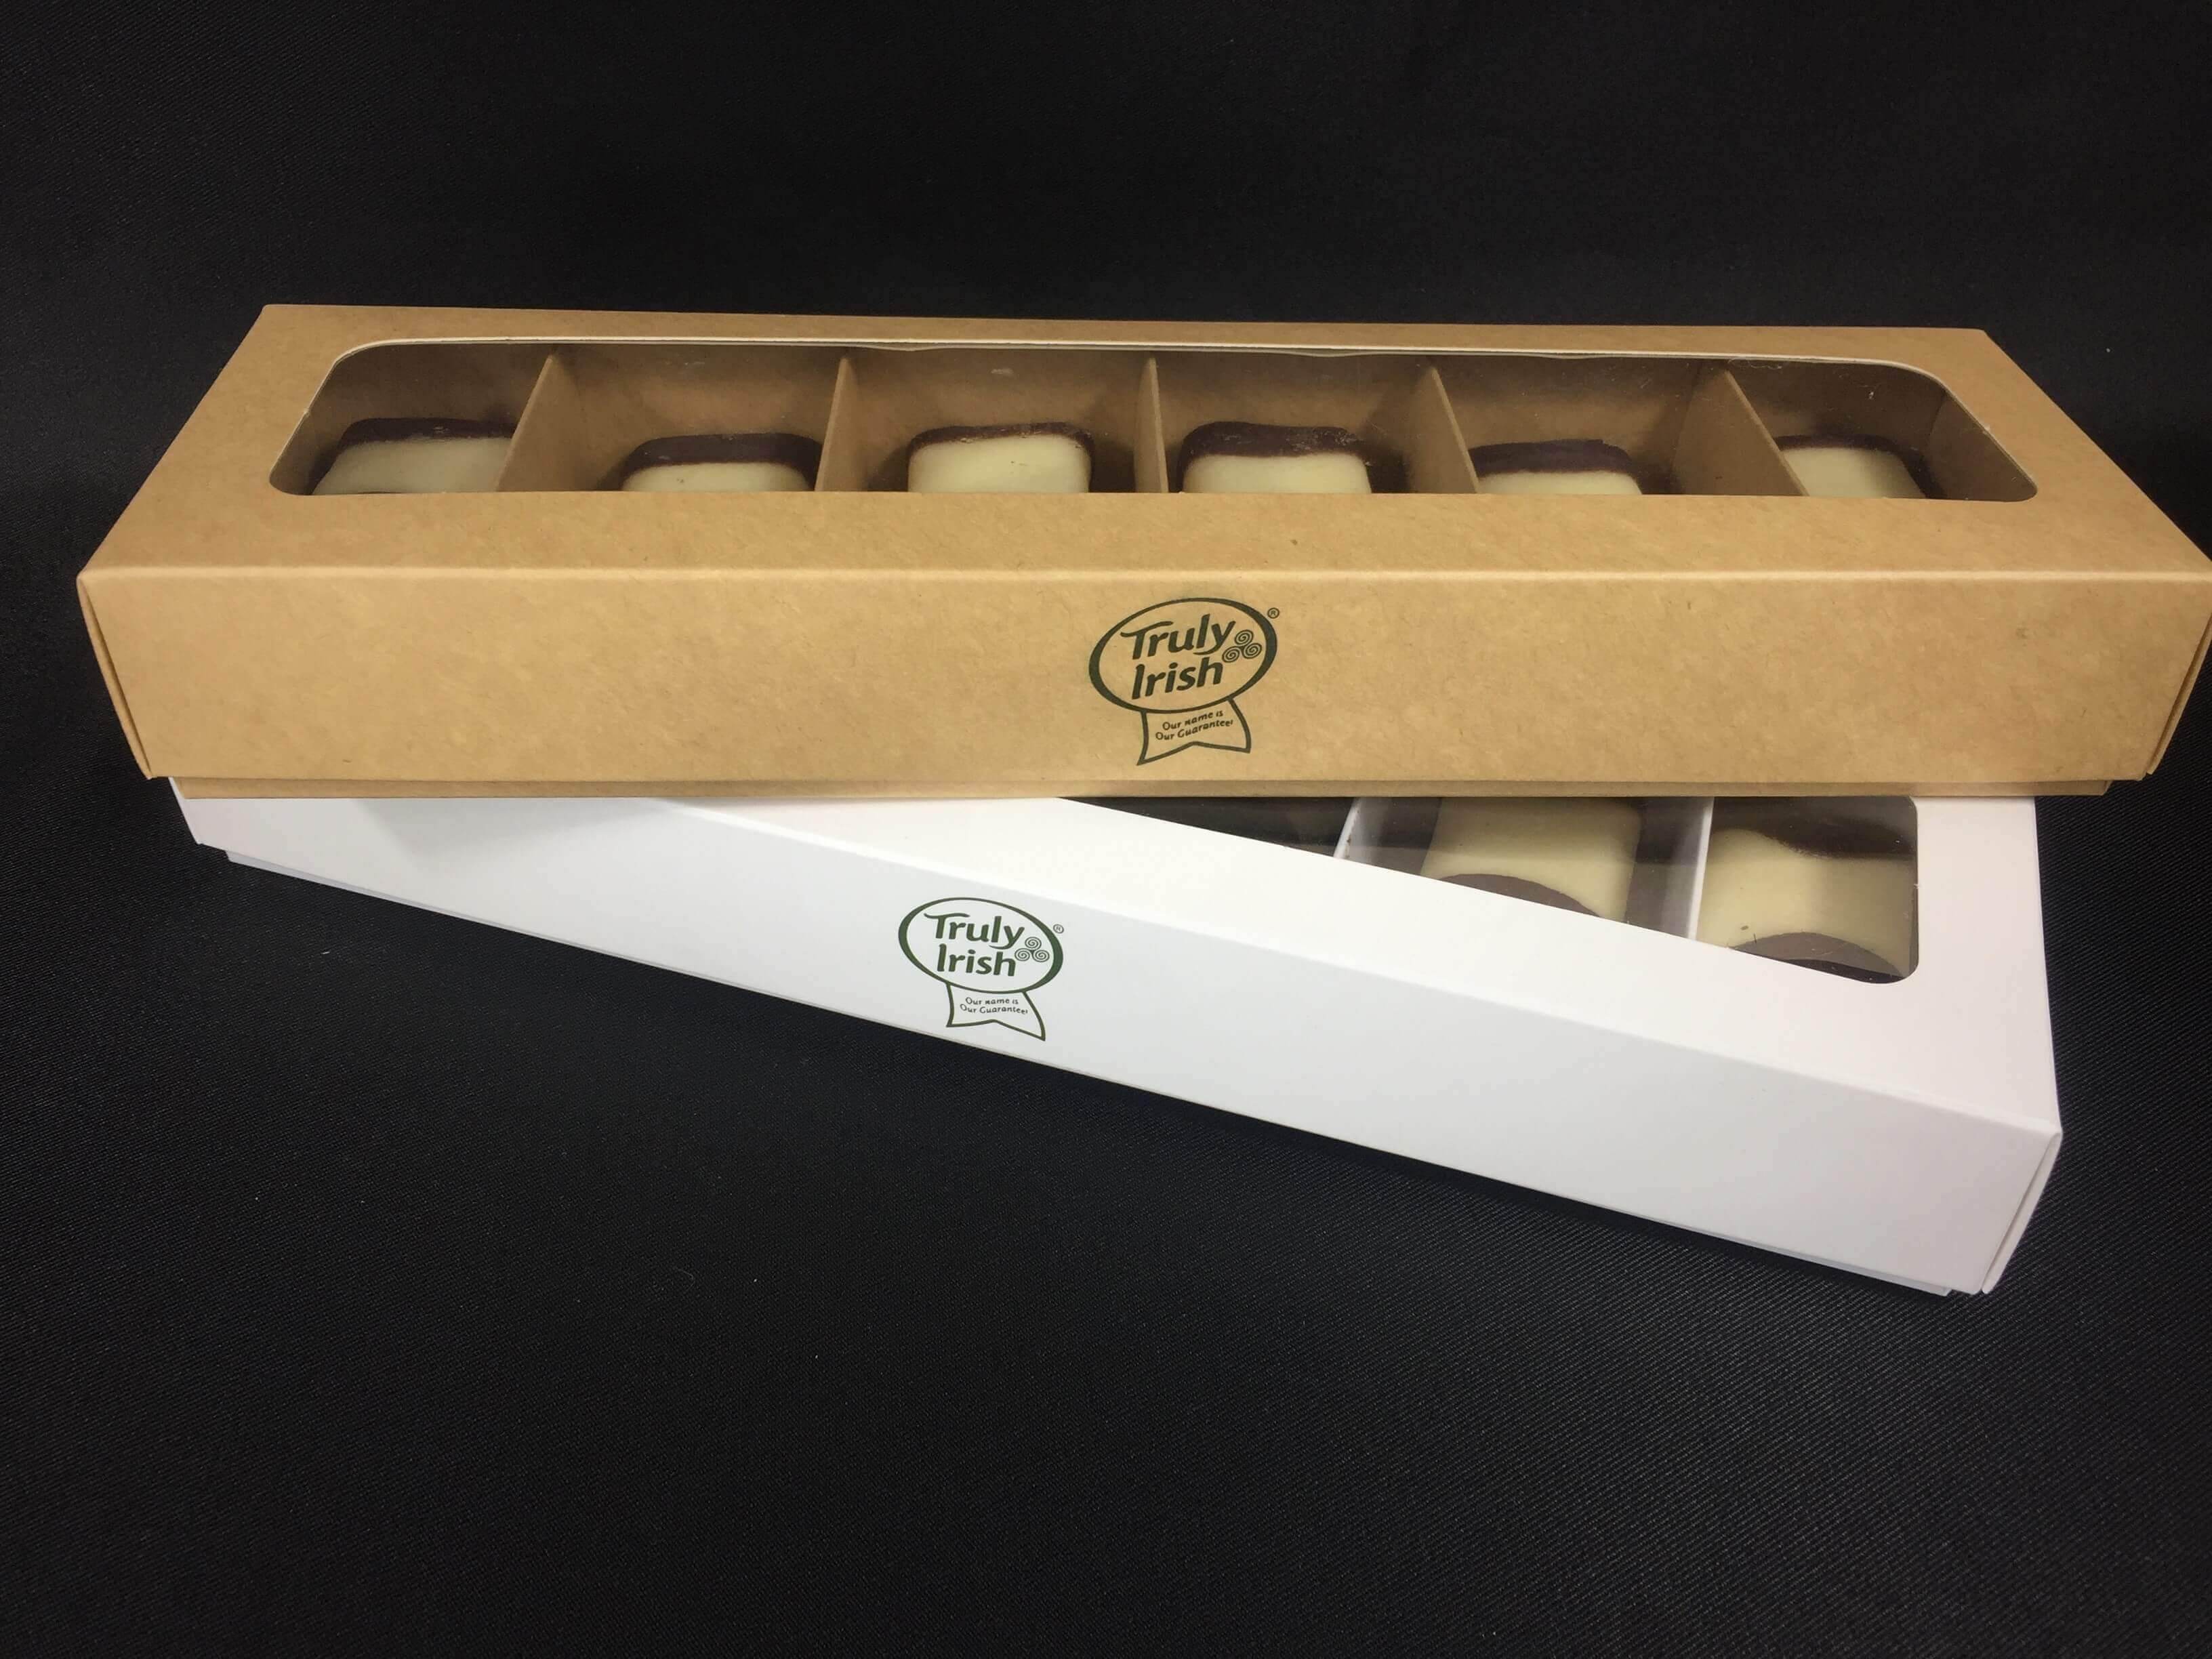 Bespoke Base & Lid 6 Pack Tray Bake Box with Wondow & Foild logo